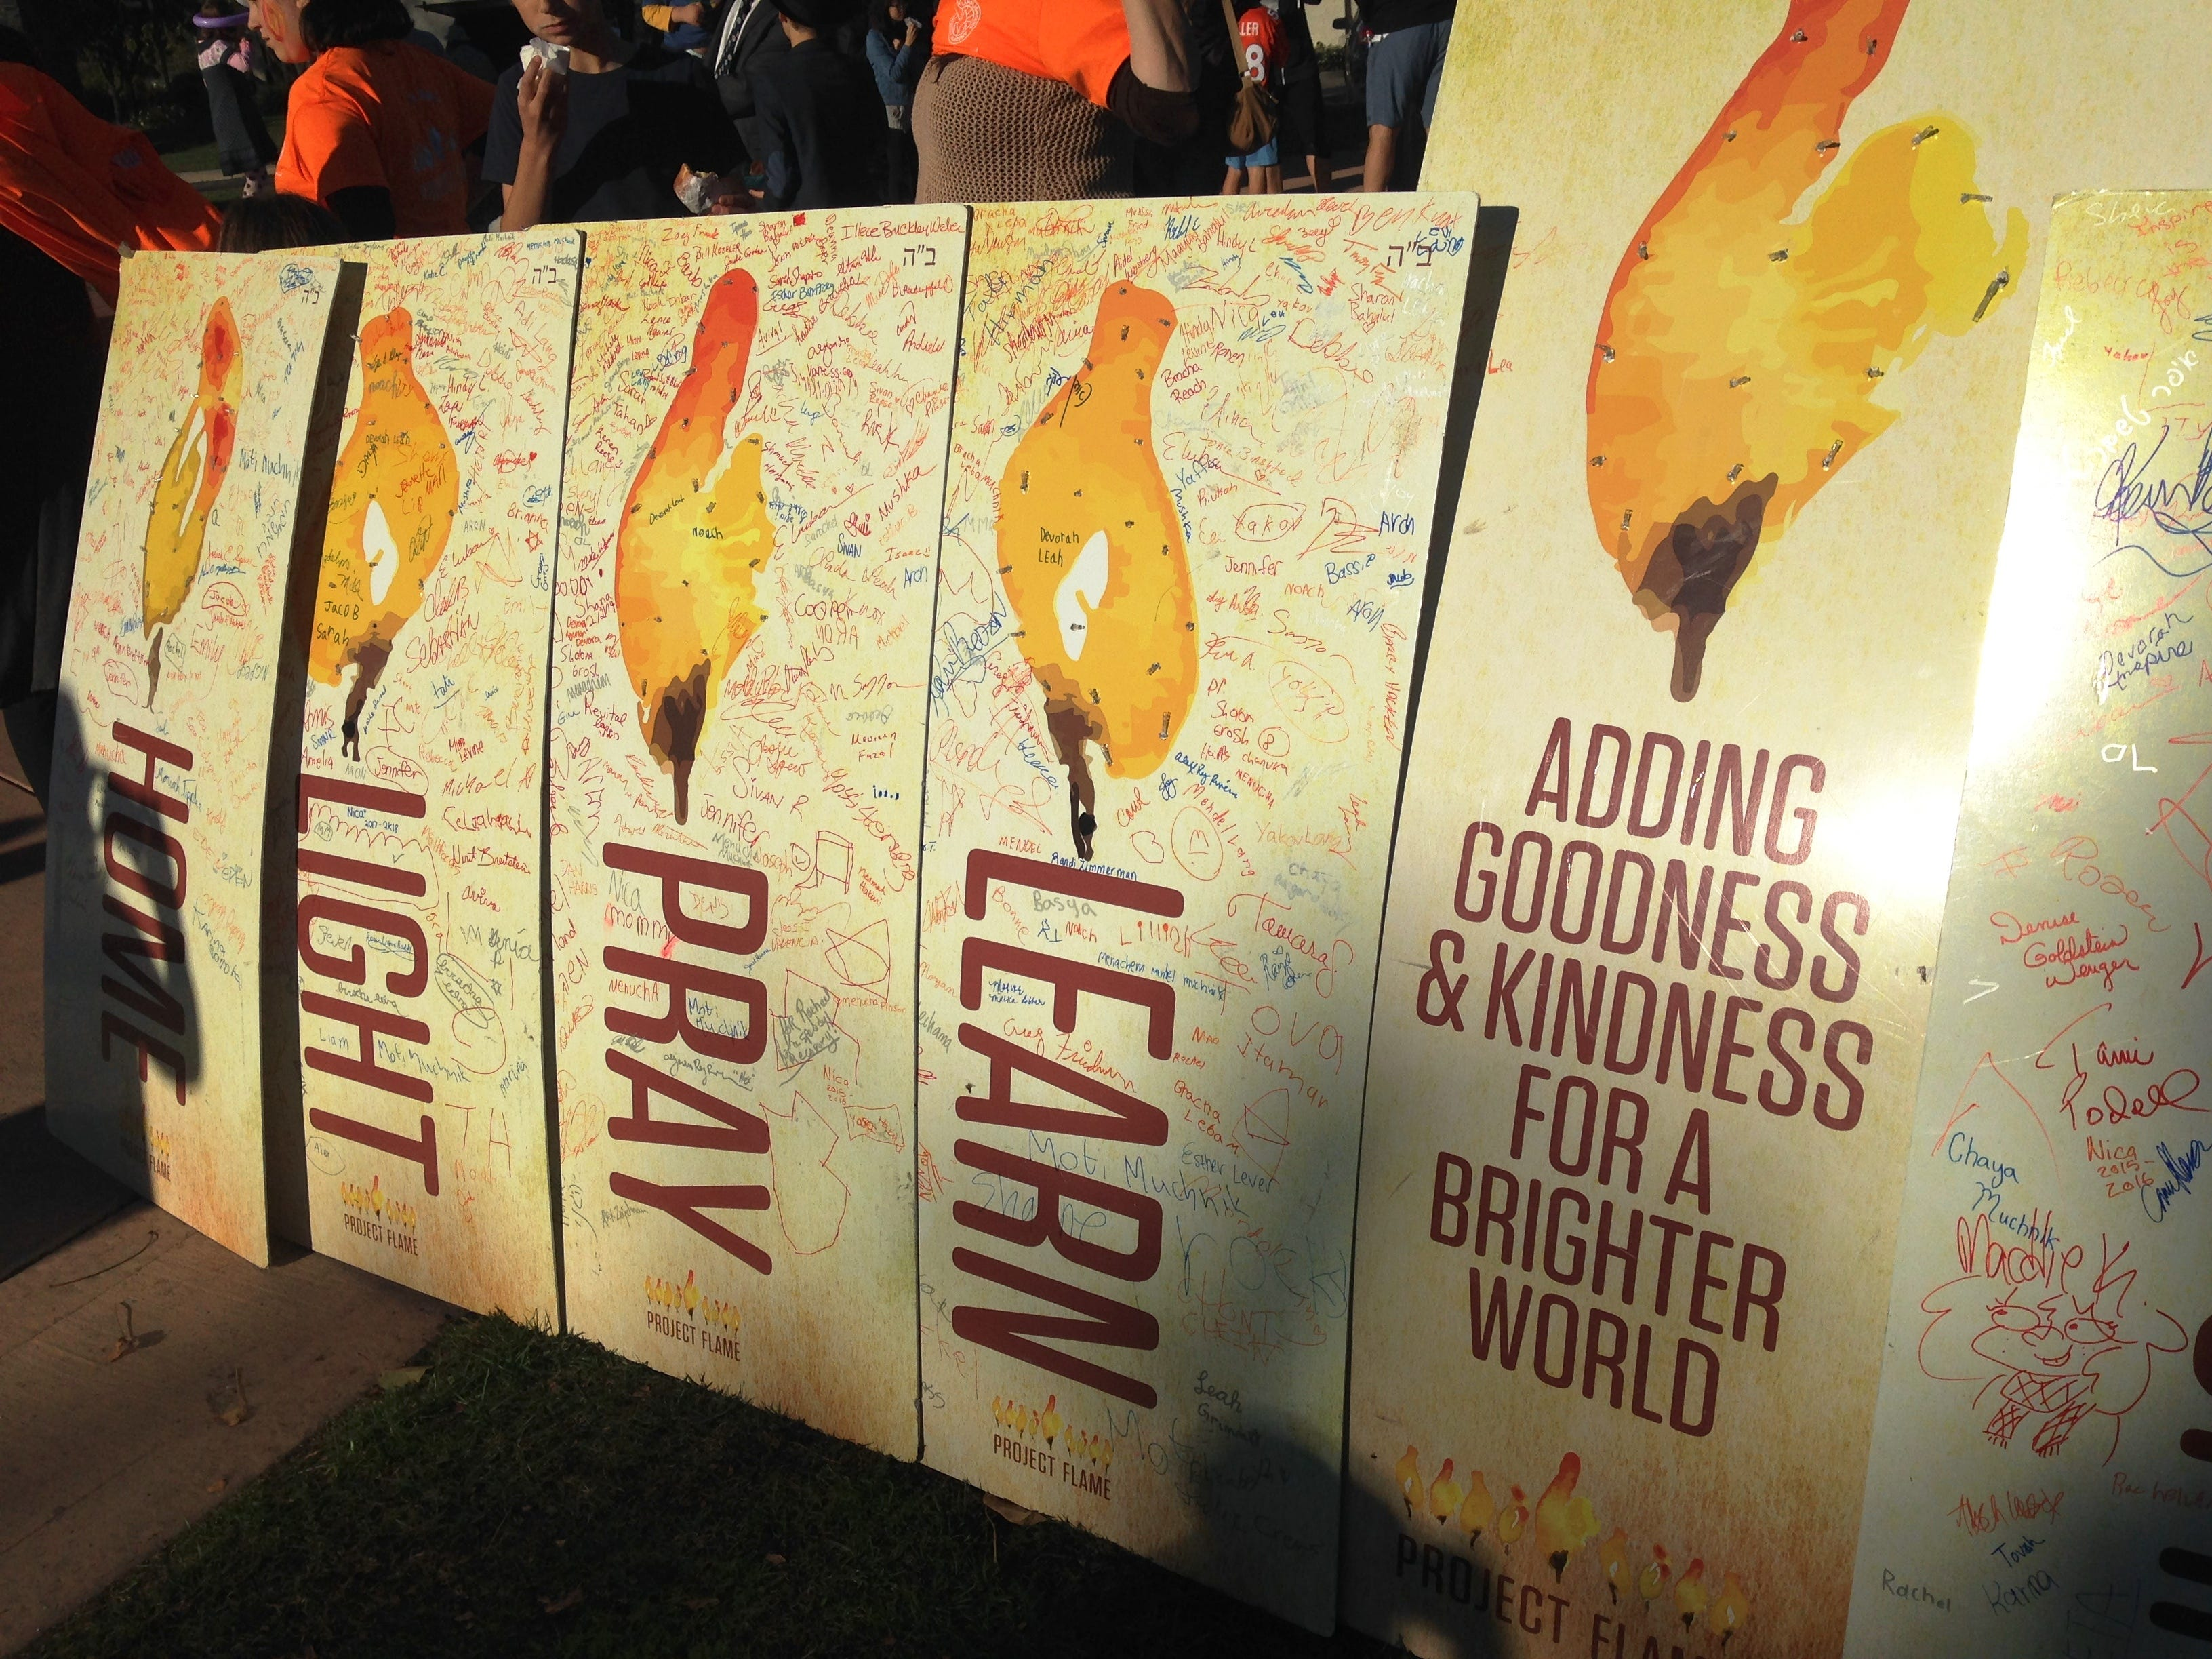 Uplifting signage Is on display Sunday at Chabad of Camarillo's 16th annual Hanukkah Festival and Grand Menorah Lighting in Constitution Park in Camarillo.